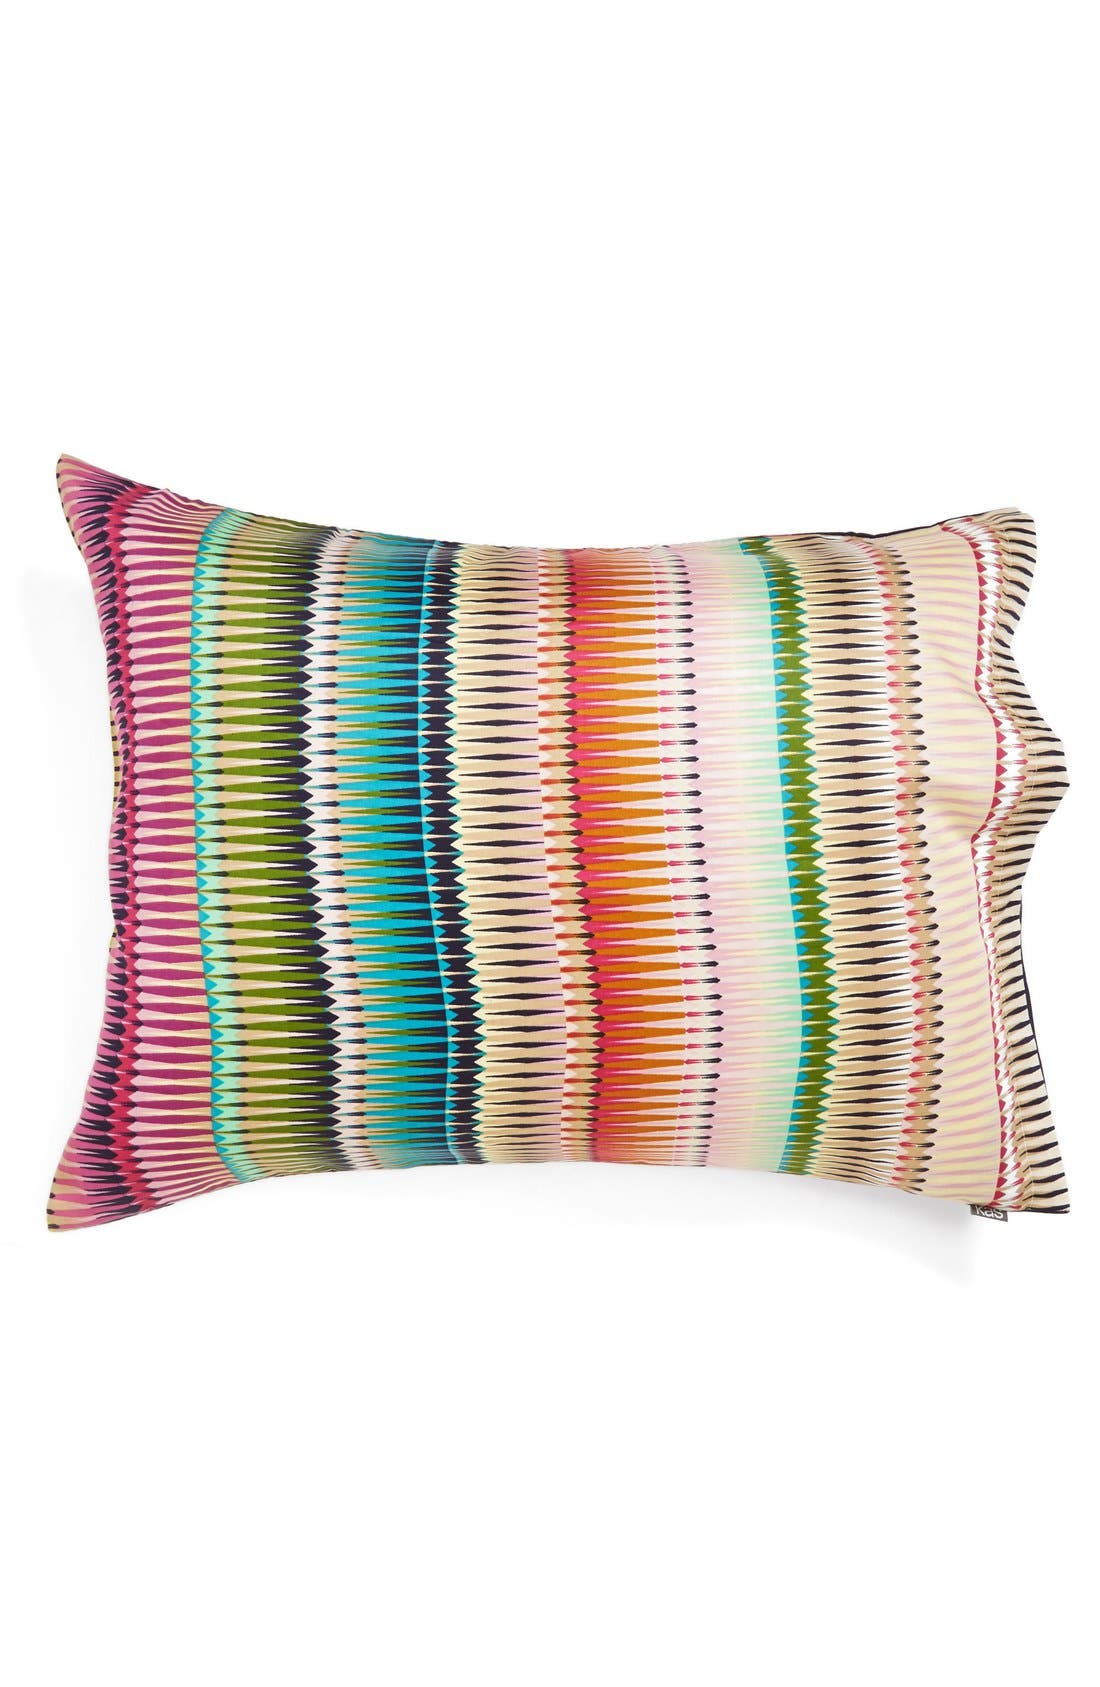 Alternate Image 1 Selected - Kas Designs 'Indio' Pillow Case (Online Only)